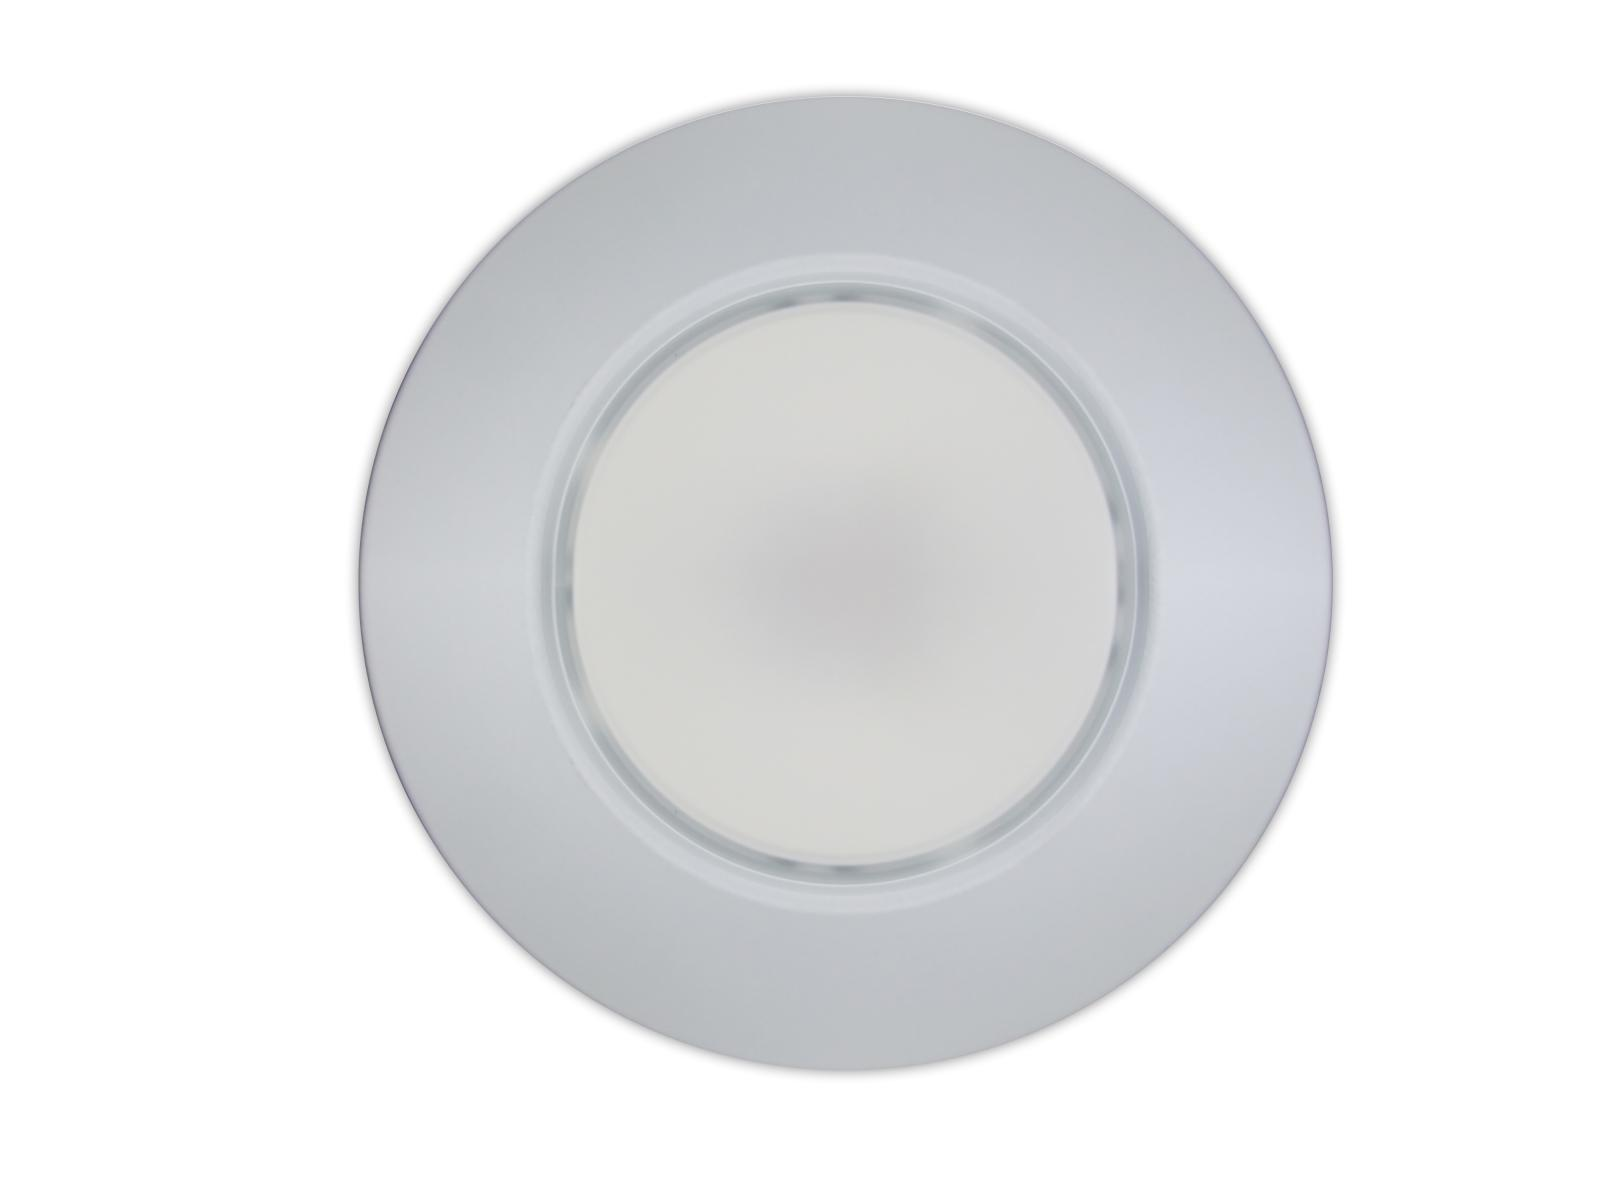 12 X DownLight 14W LED Recessed Trim Dimmable 5 6 Inch